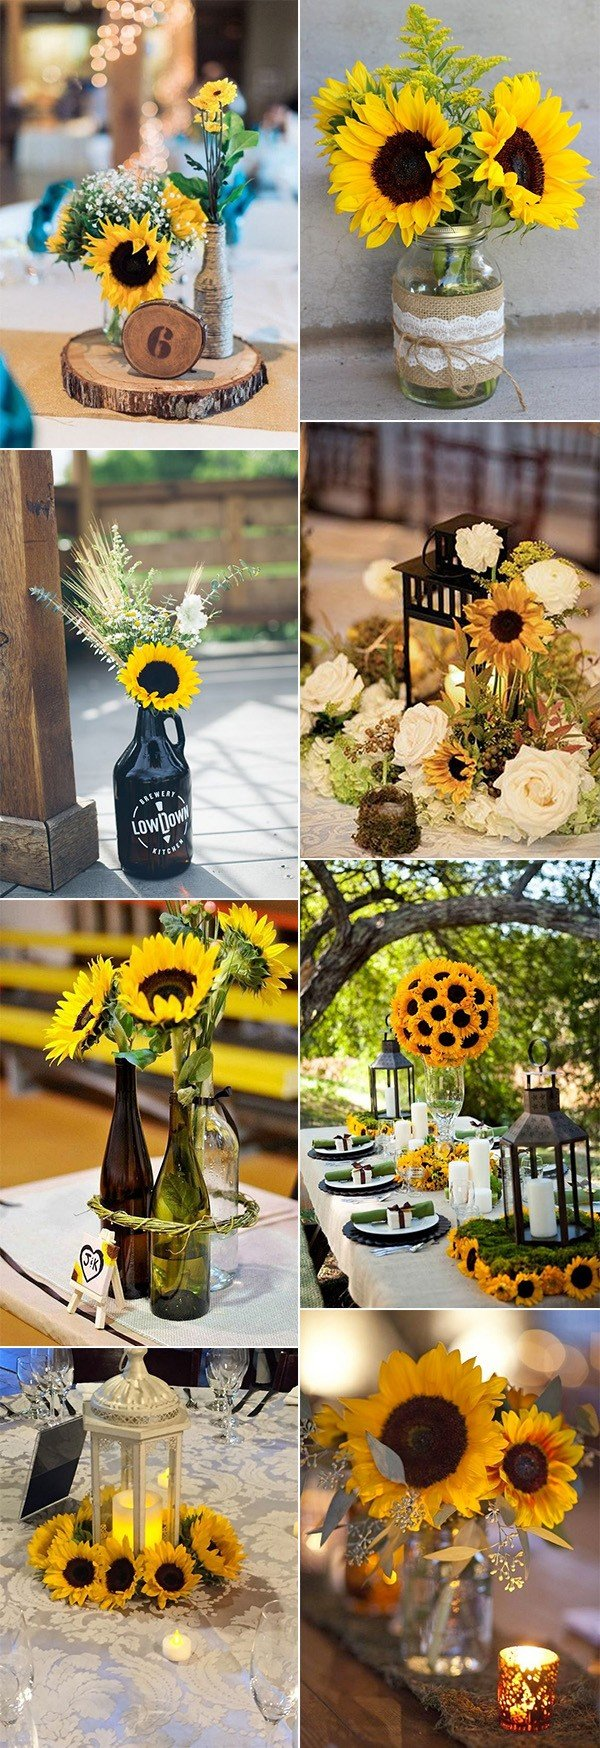 chic sunflower wedding centerpiece ideas